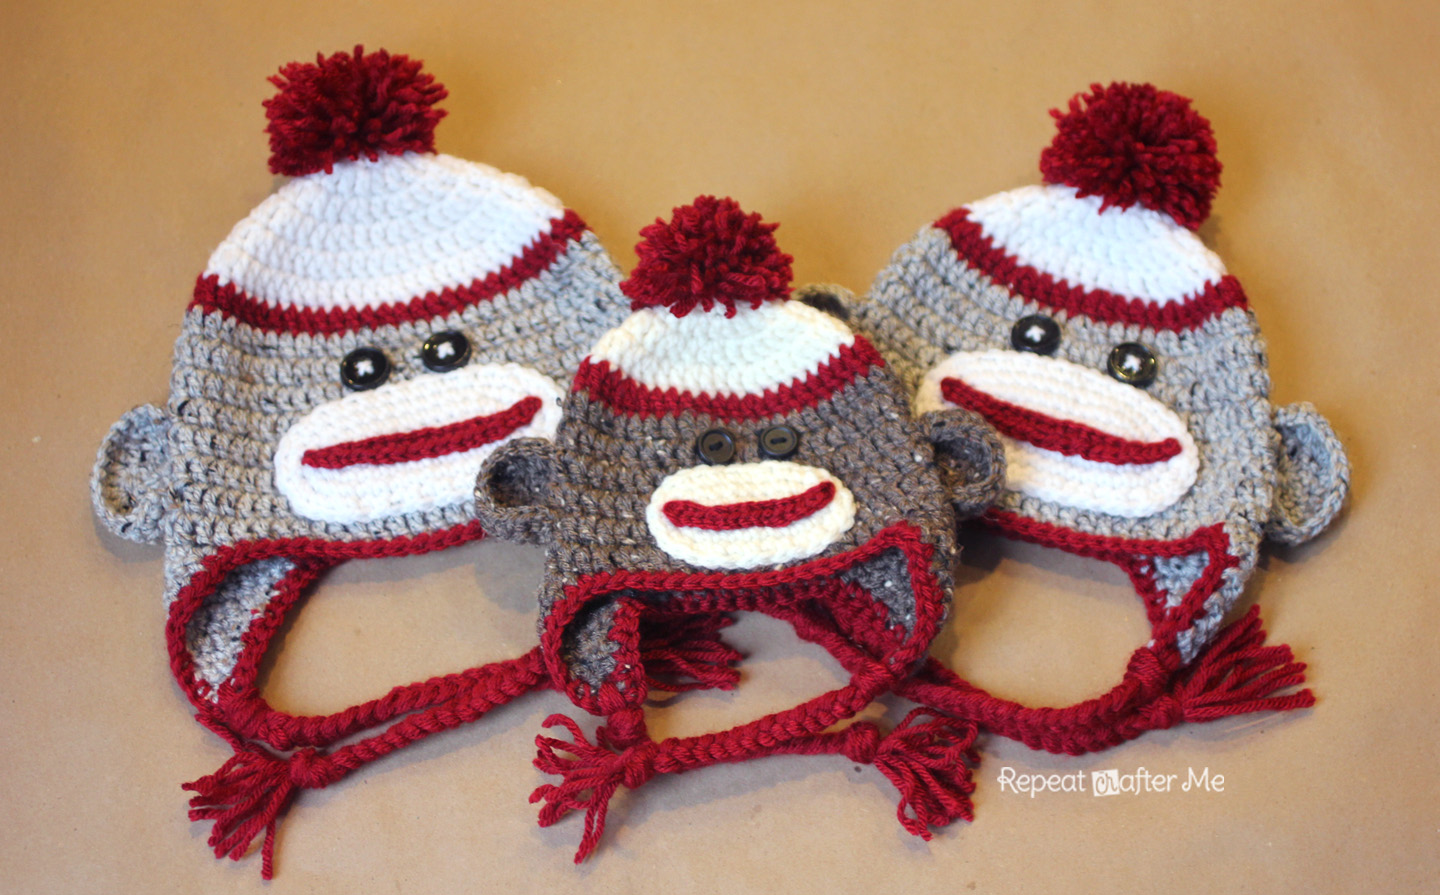 Free Crochet Patterns Monkey Hat : Crochet Sock Monkey Hat Pattern - Repeat Crafter Me